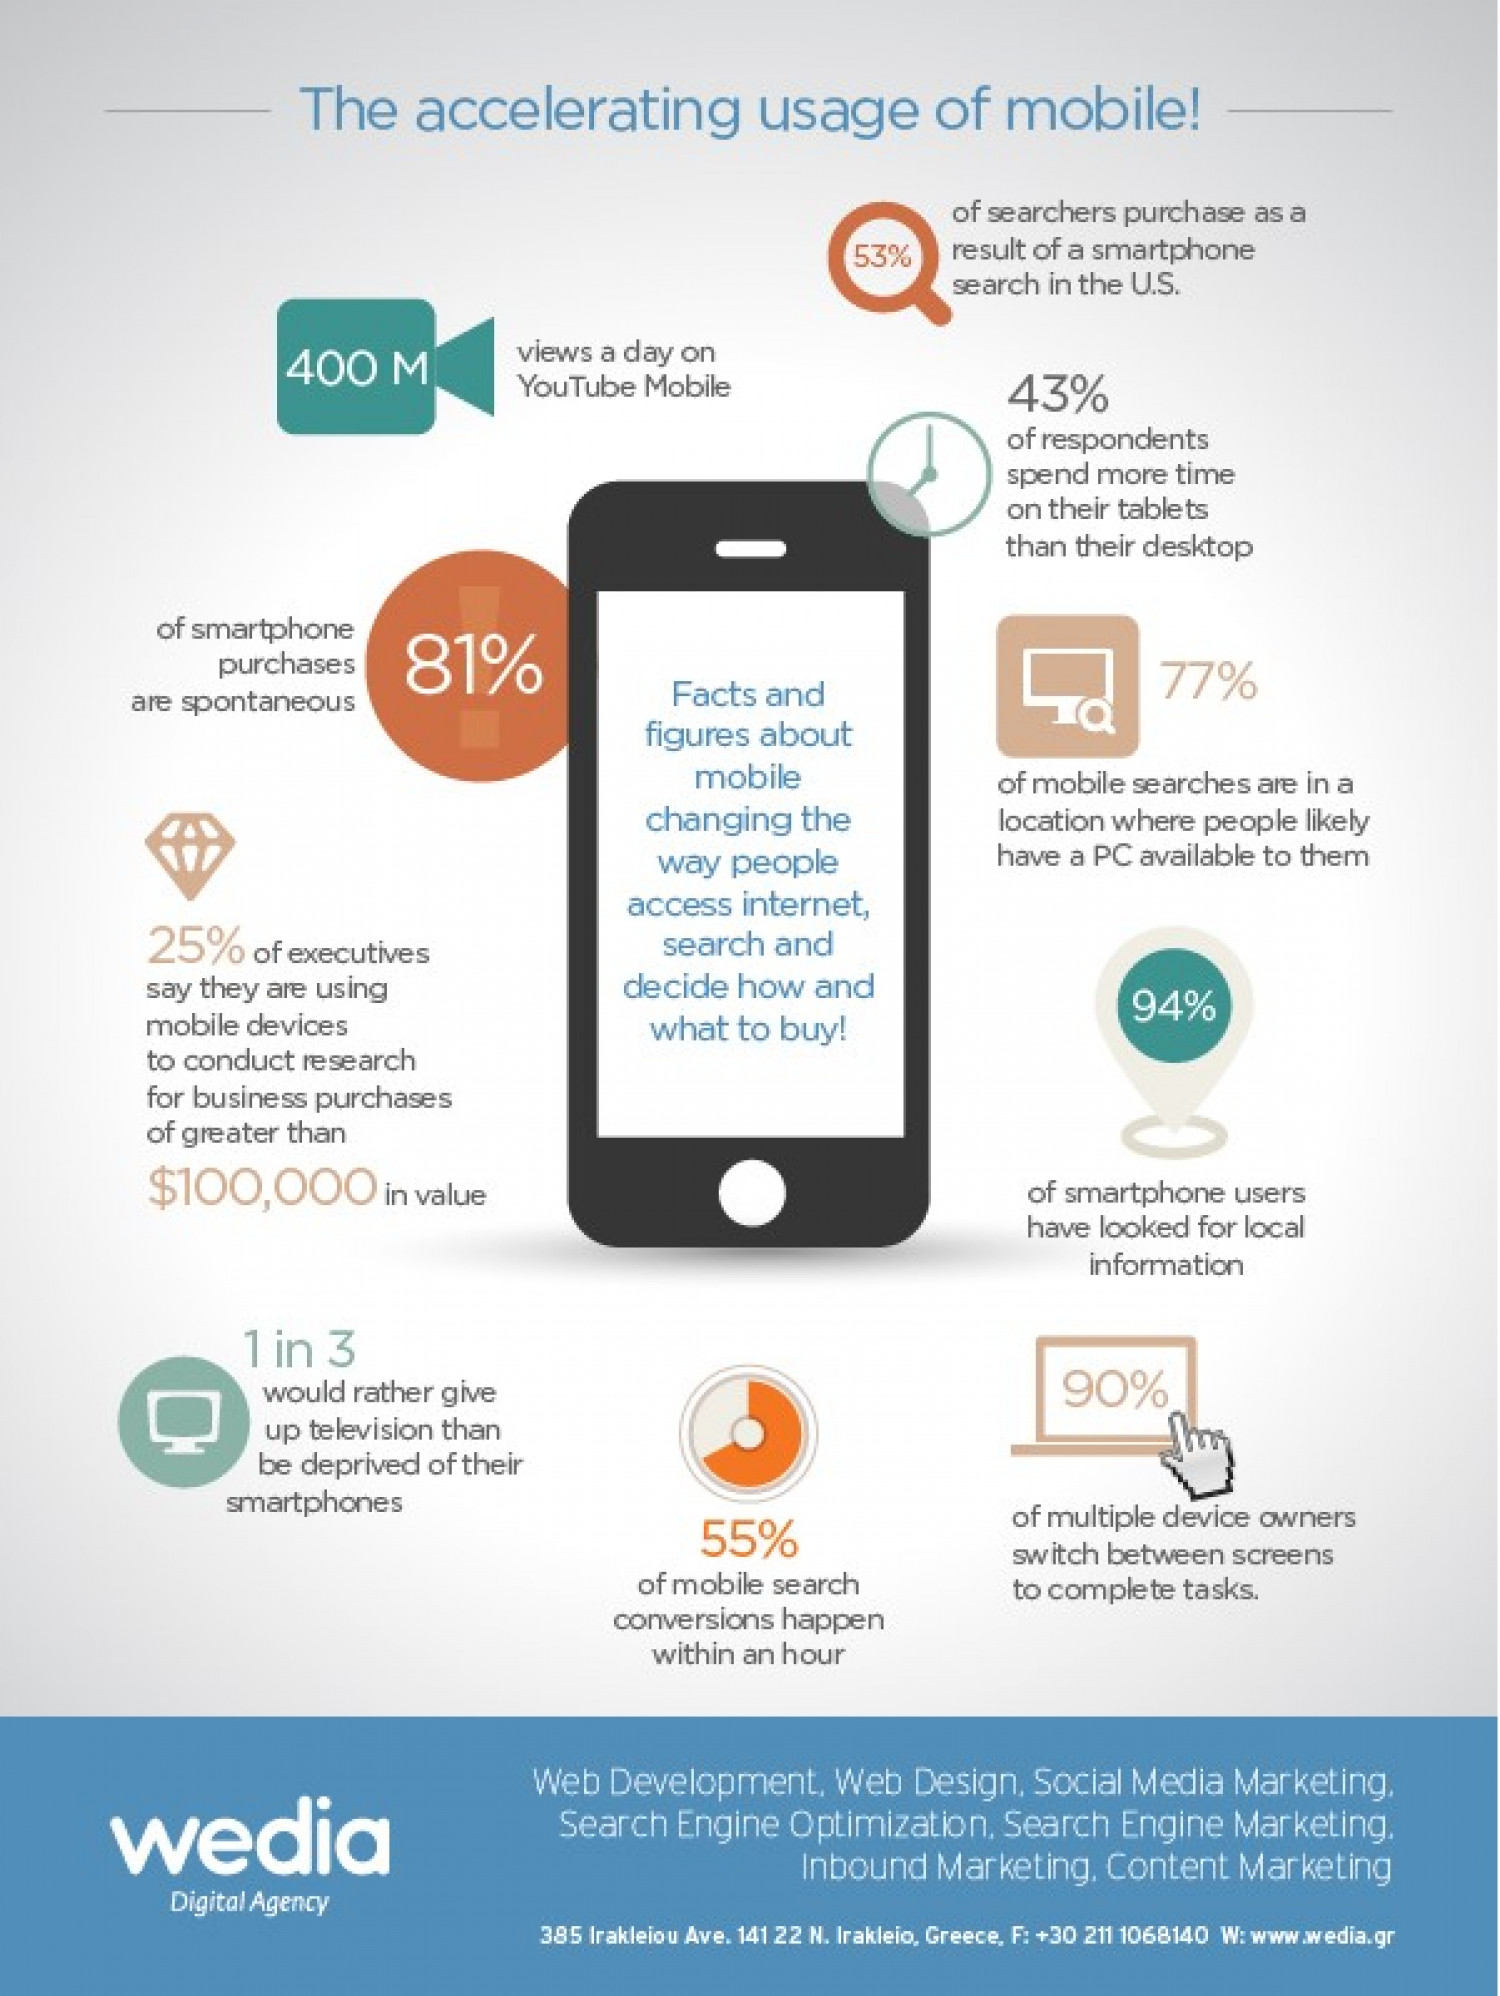 The accelerating usage of mobile!  Infographic